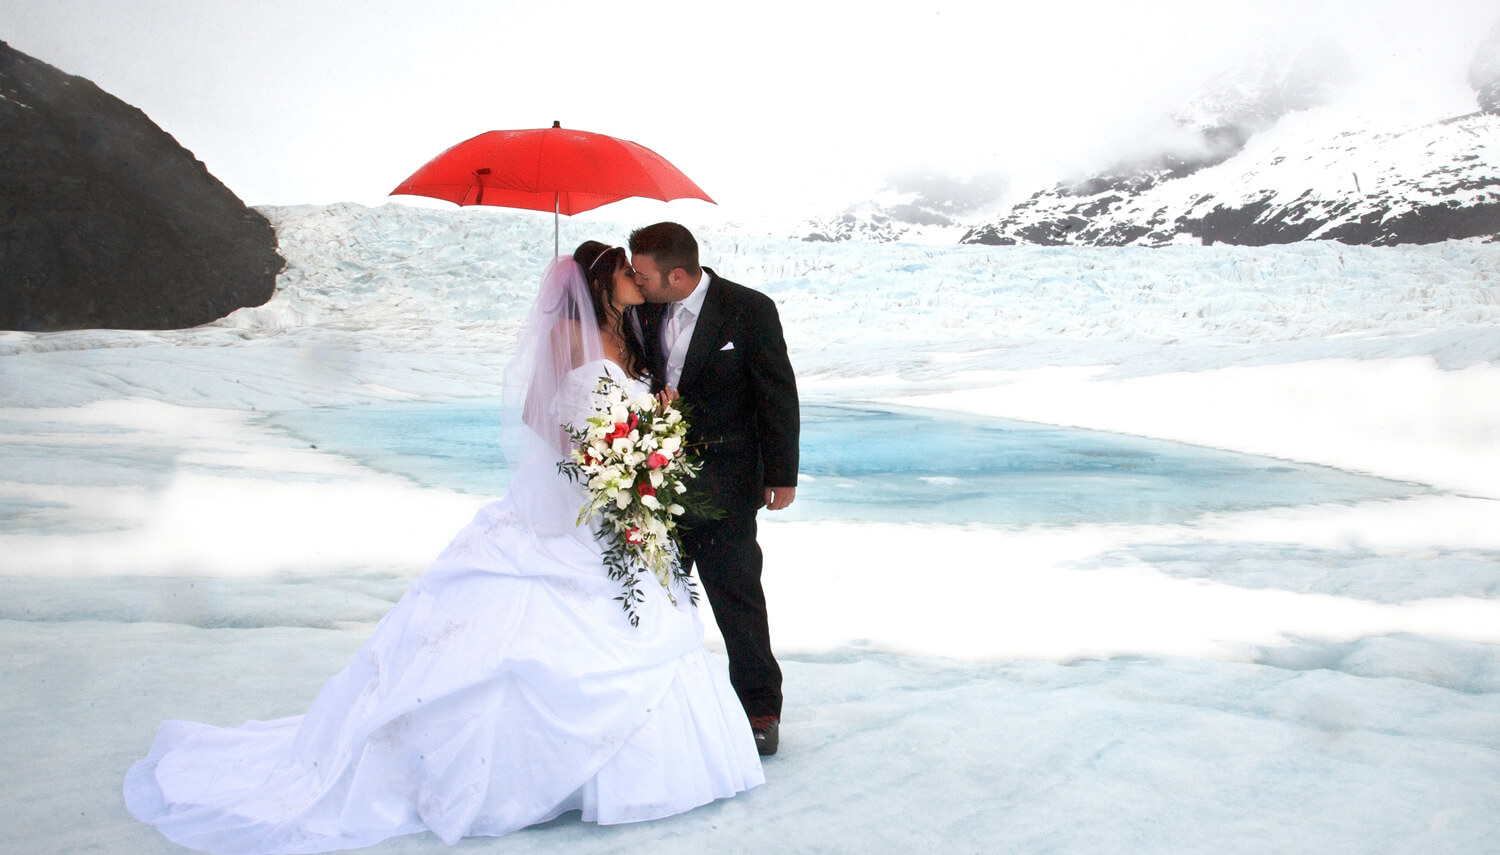 First Kiss On The Glacier Beside A Clear Blue Pond Under Bright Red Umbrella